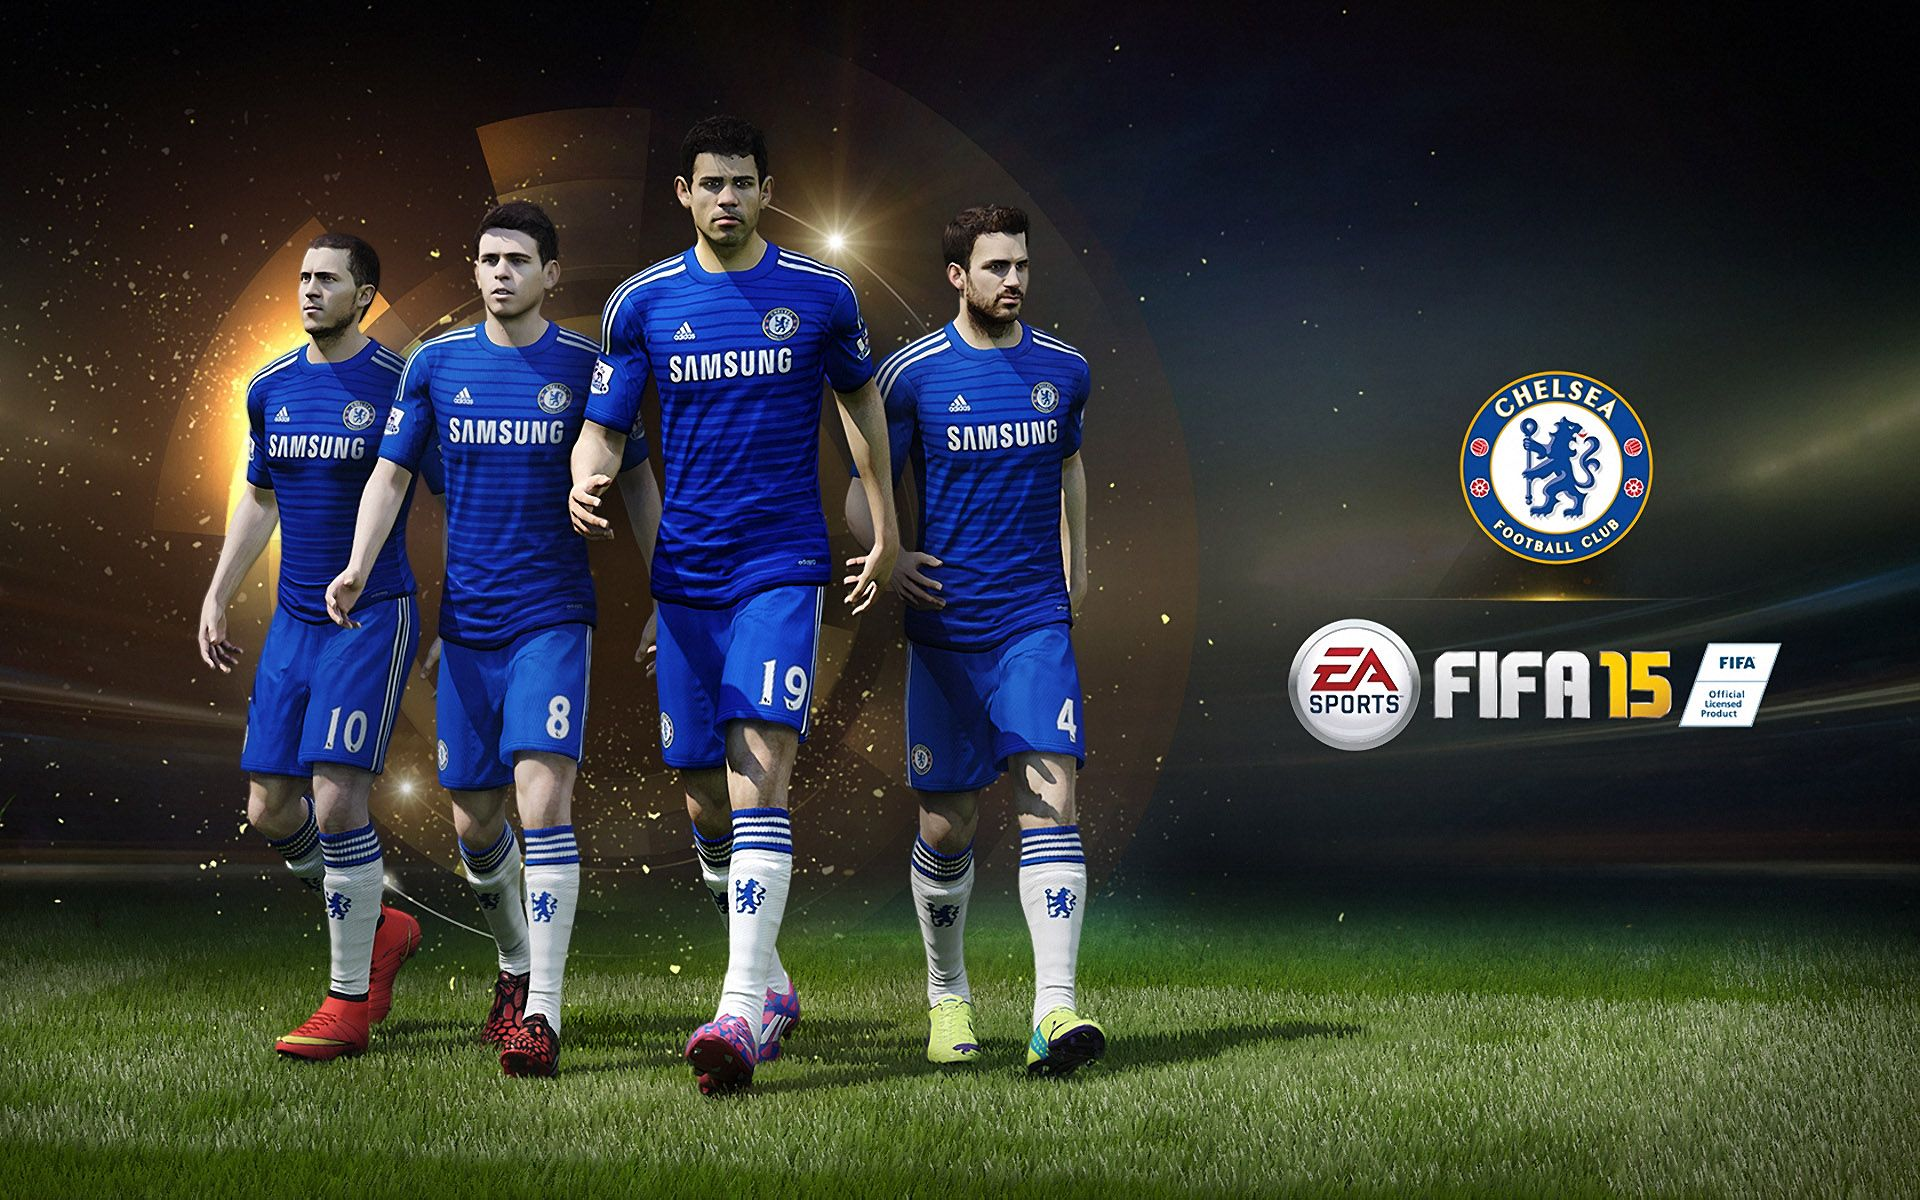 Fifa  Chelsea Fc Poster Wallpaper Wide Or Hd Games Wallpapers X